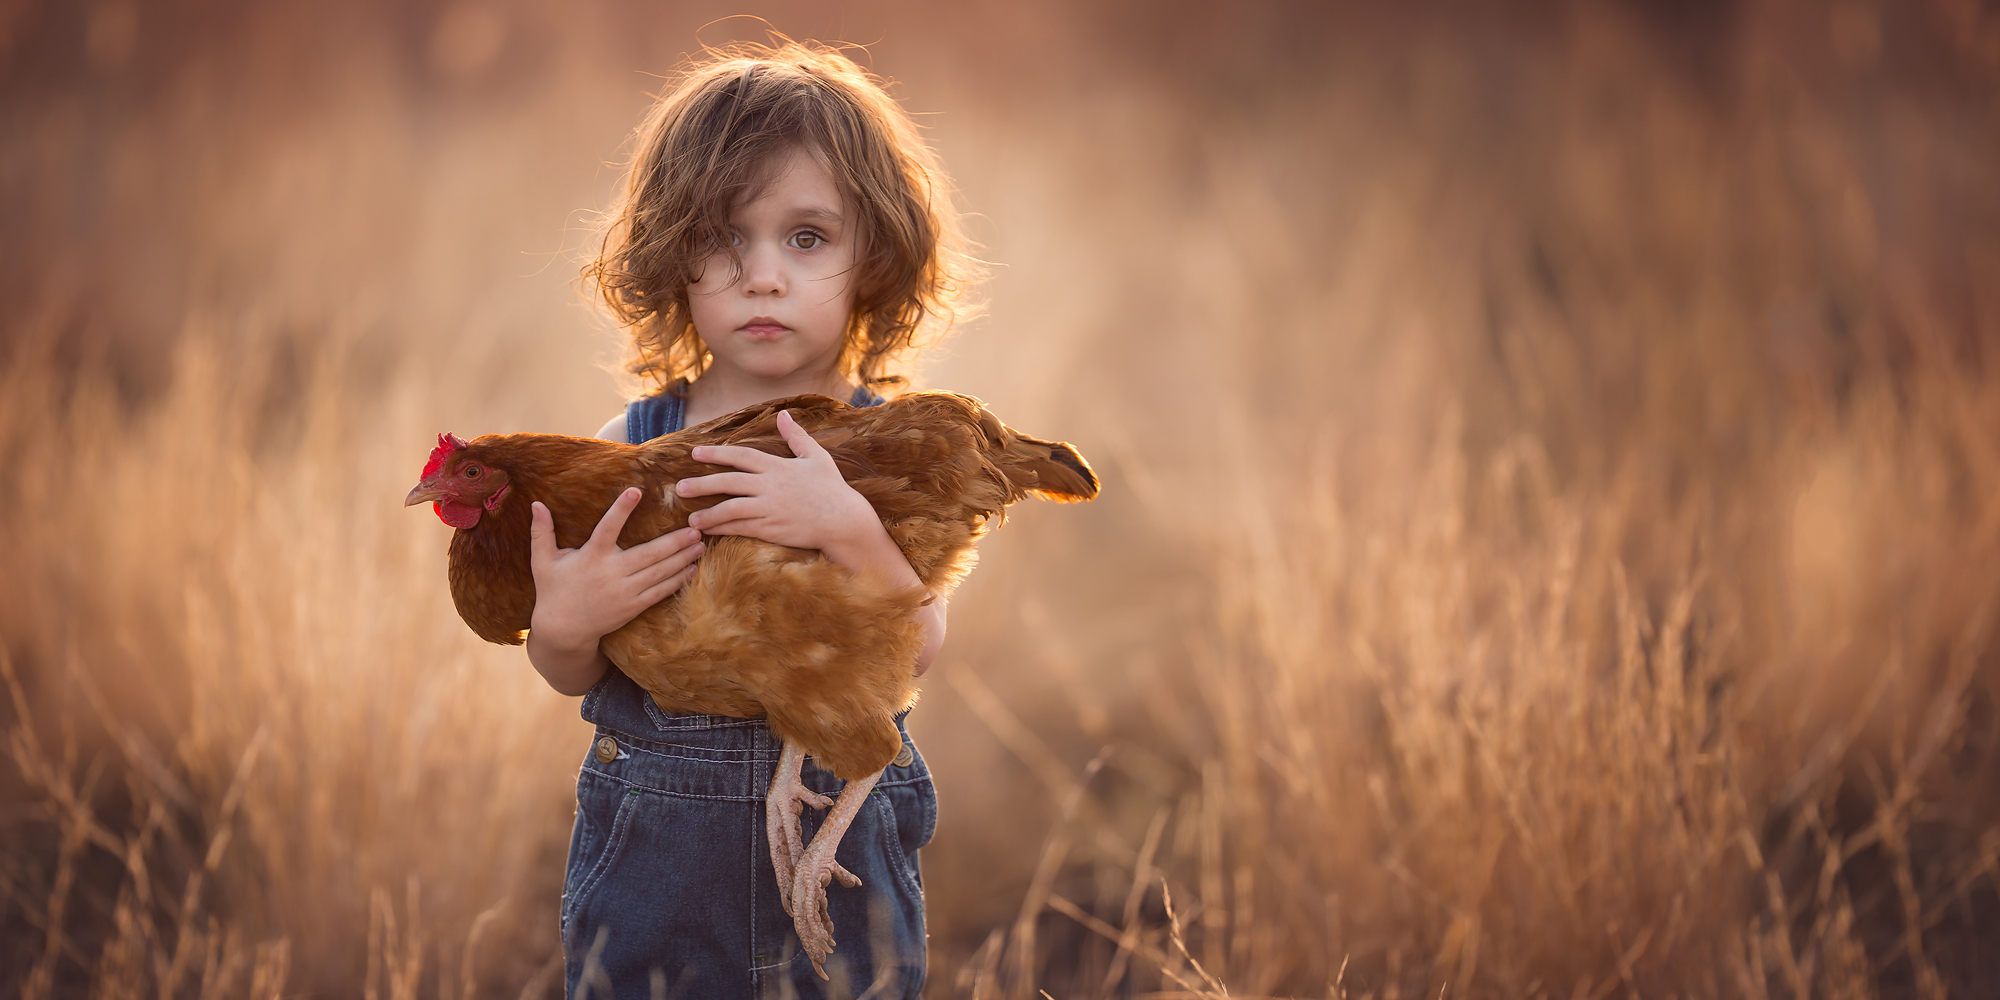 Copyright: Lisa Holloway